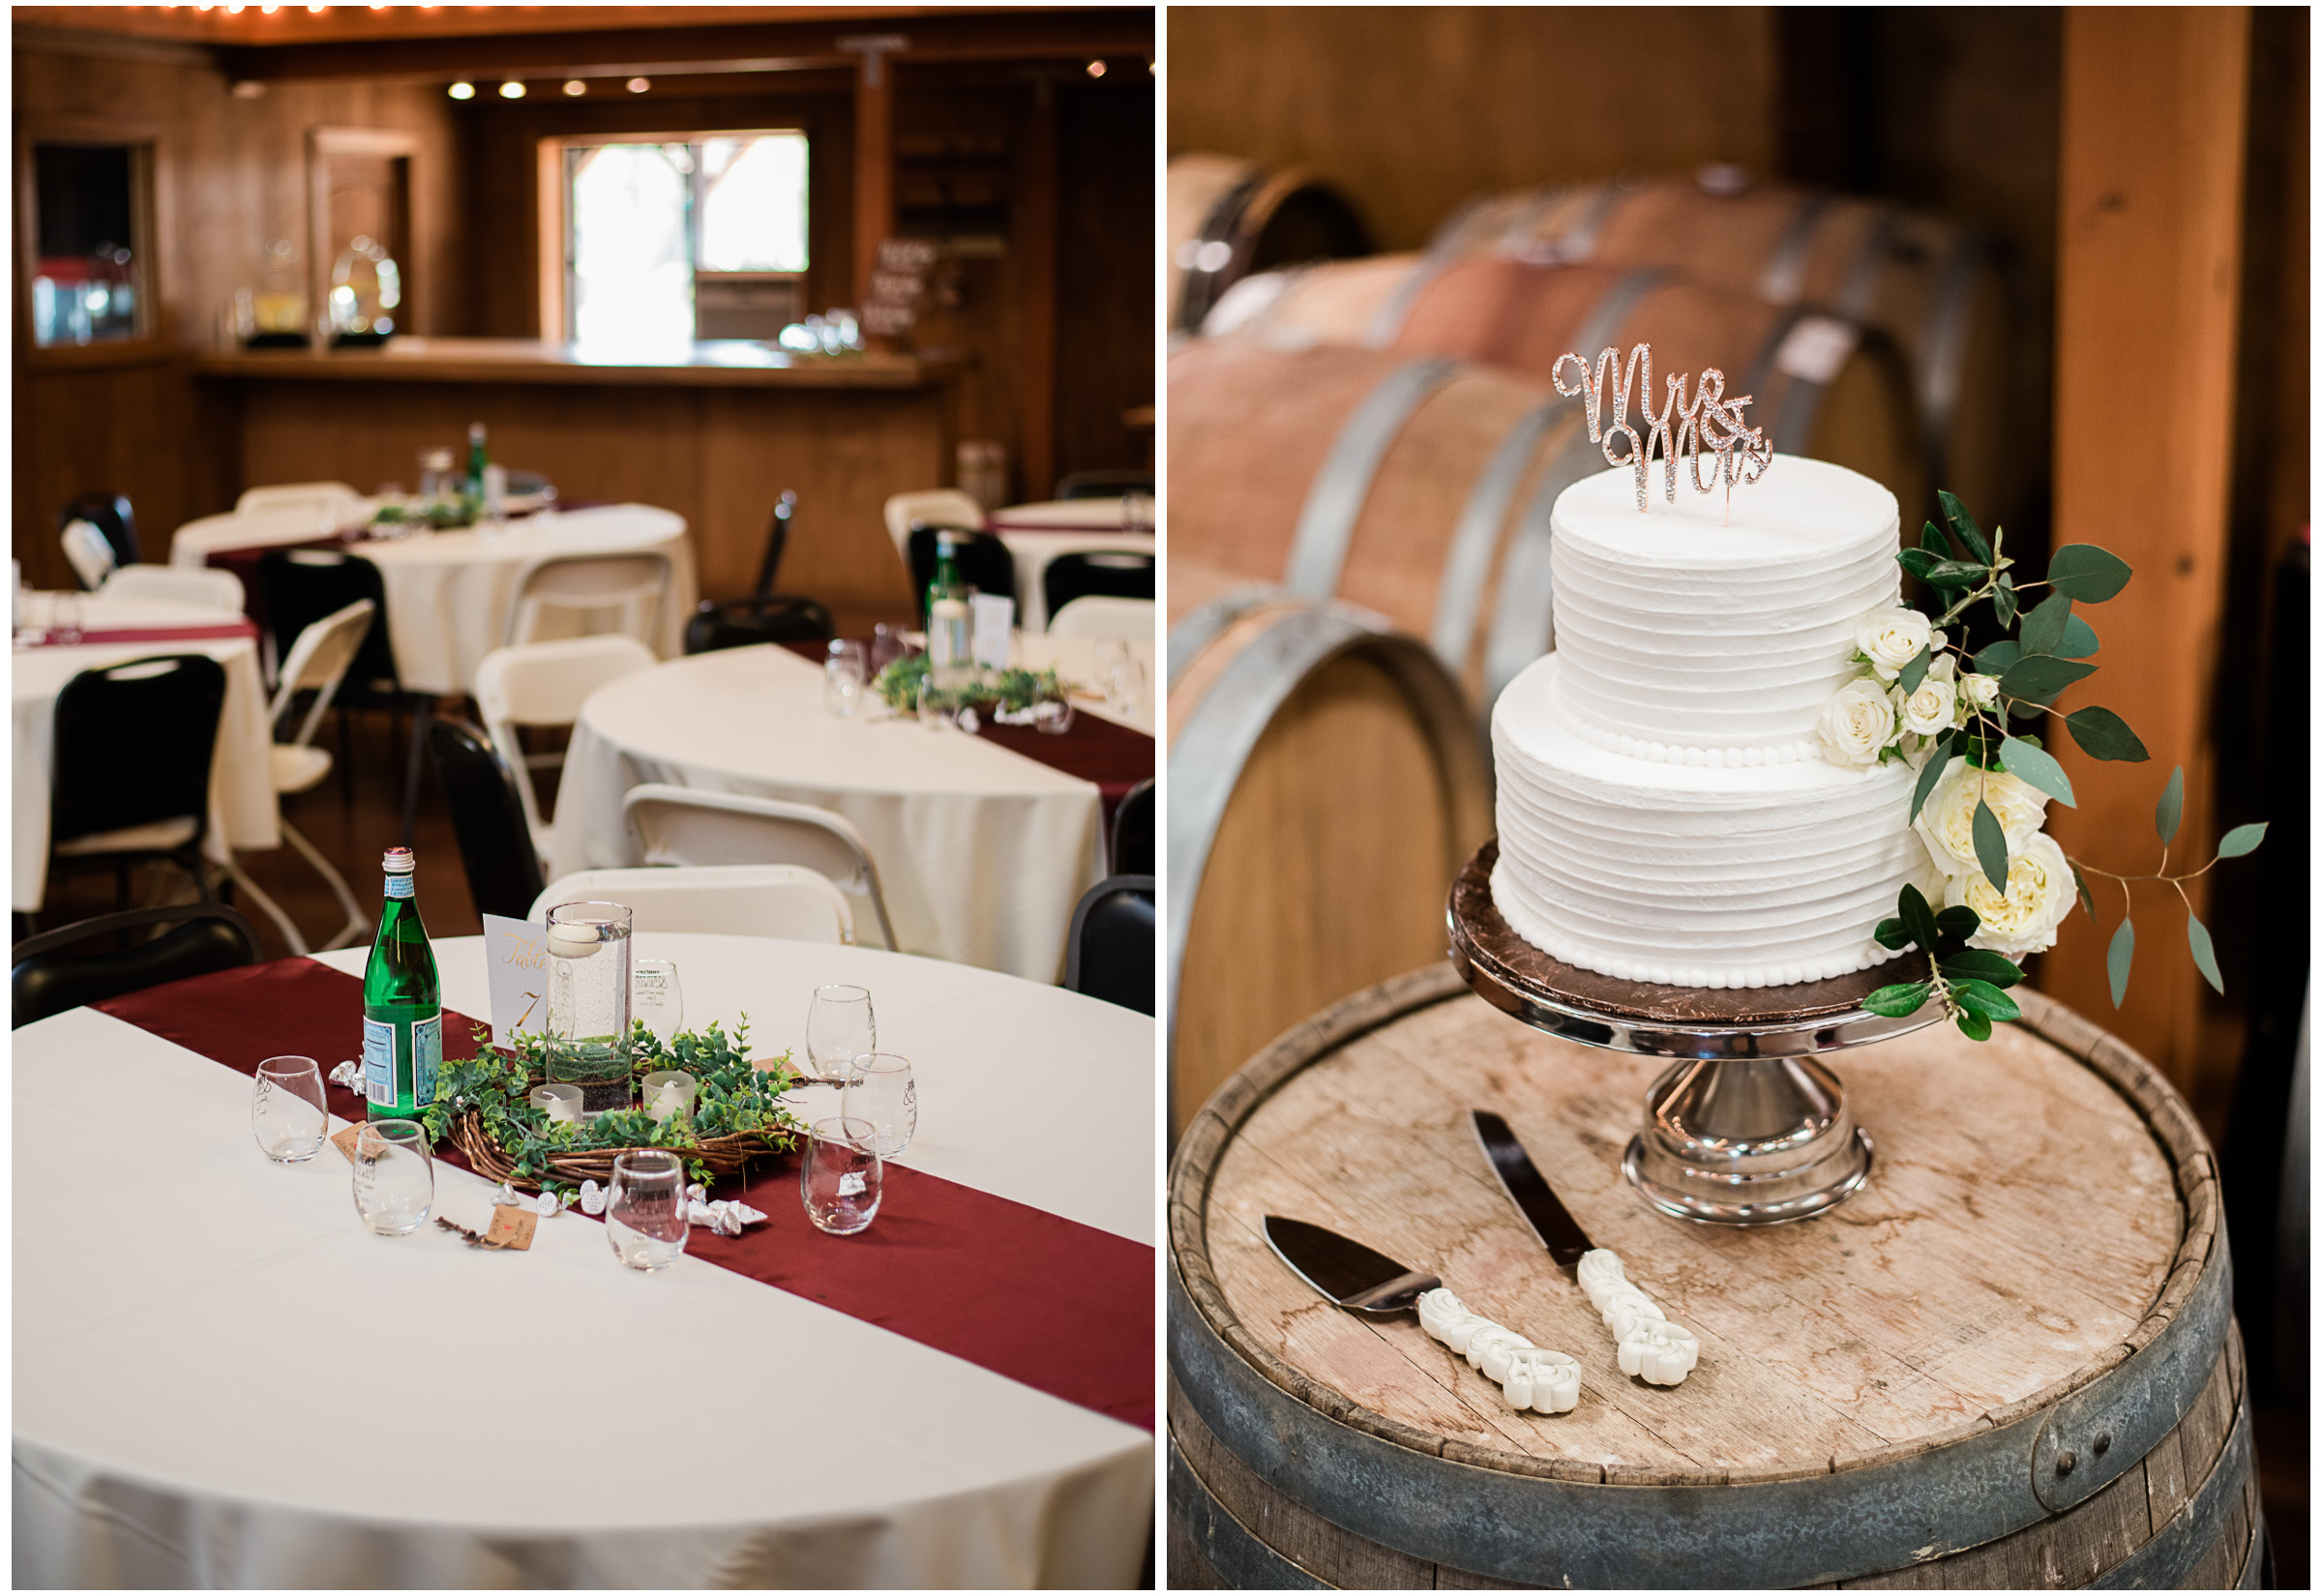 Lincoln Wedding - Sacramento Photographer - Rock Hill Winery - Justin Wilcox Photography - 2.jpg